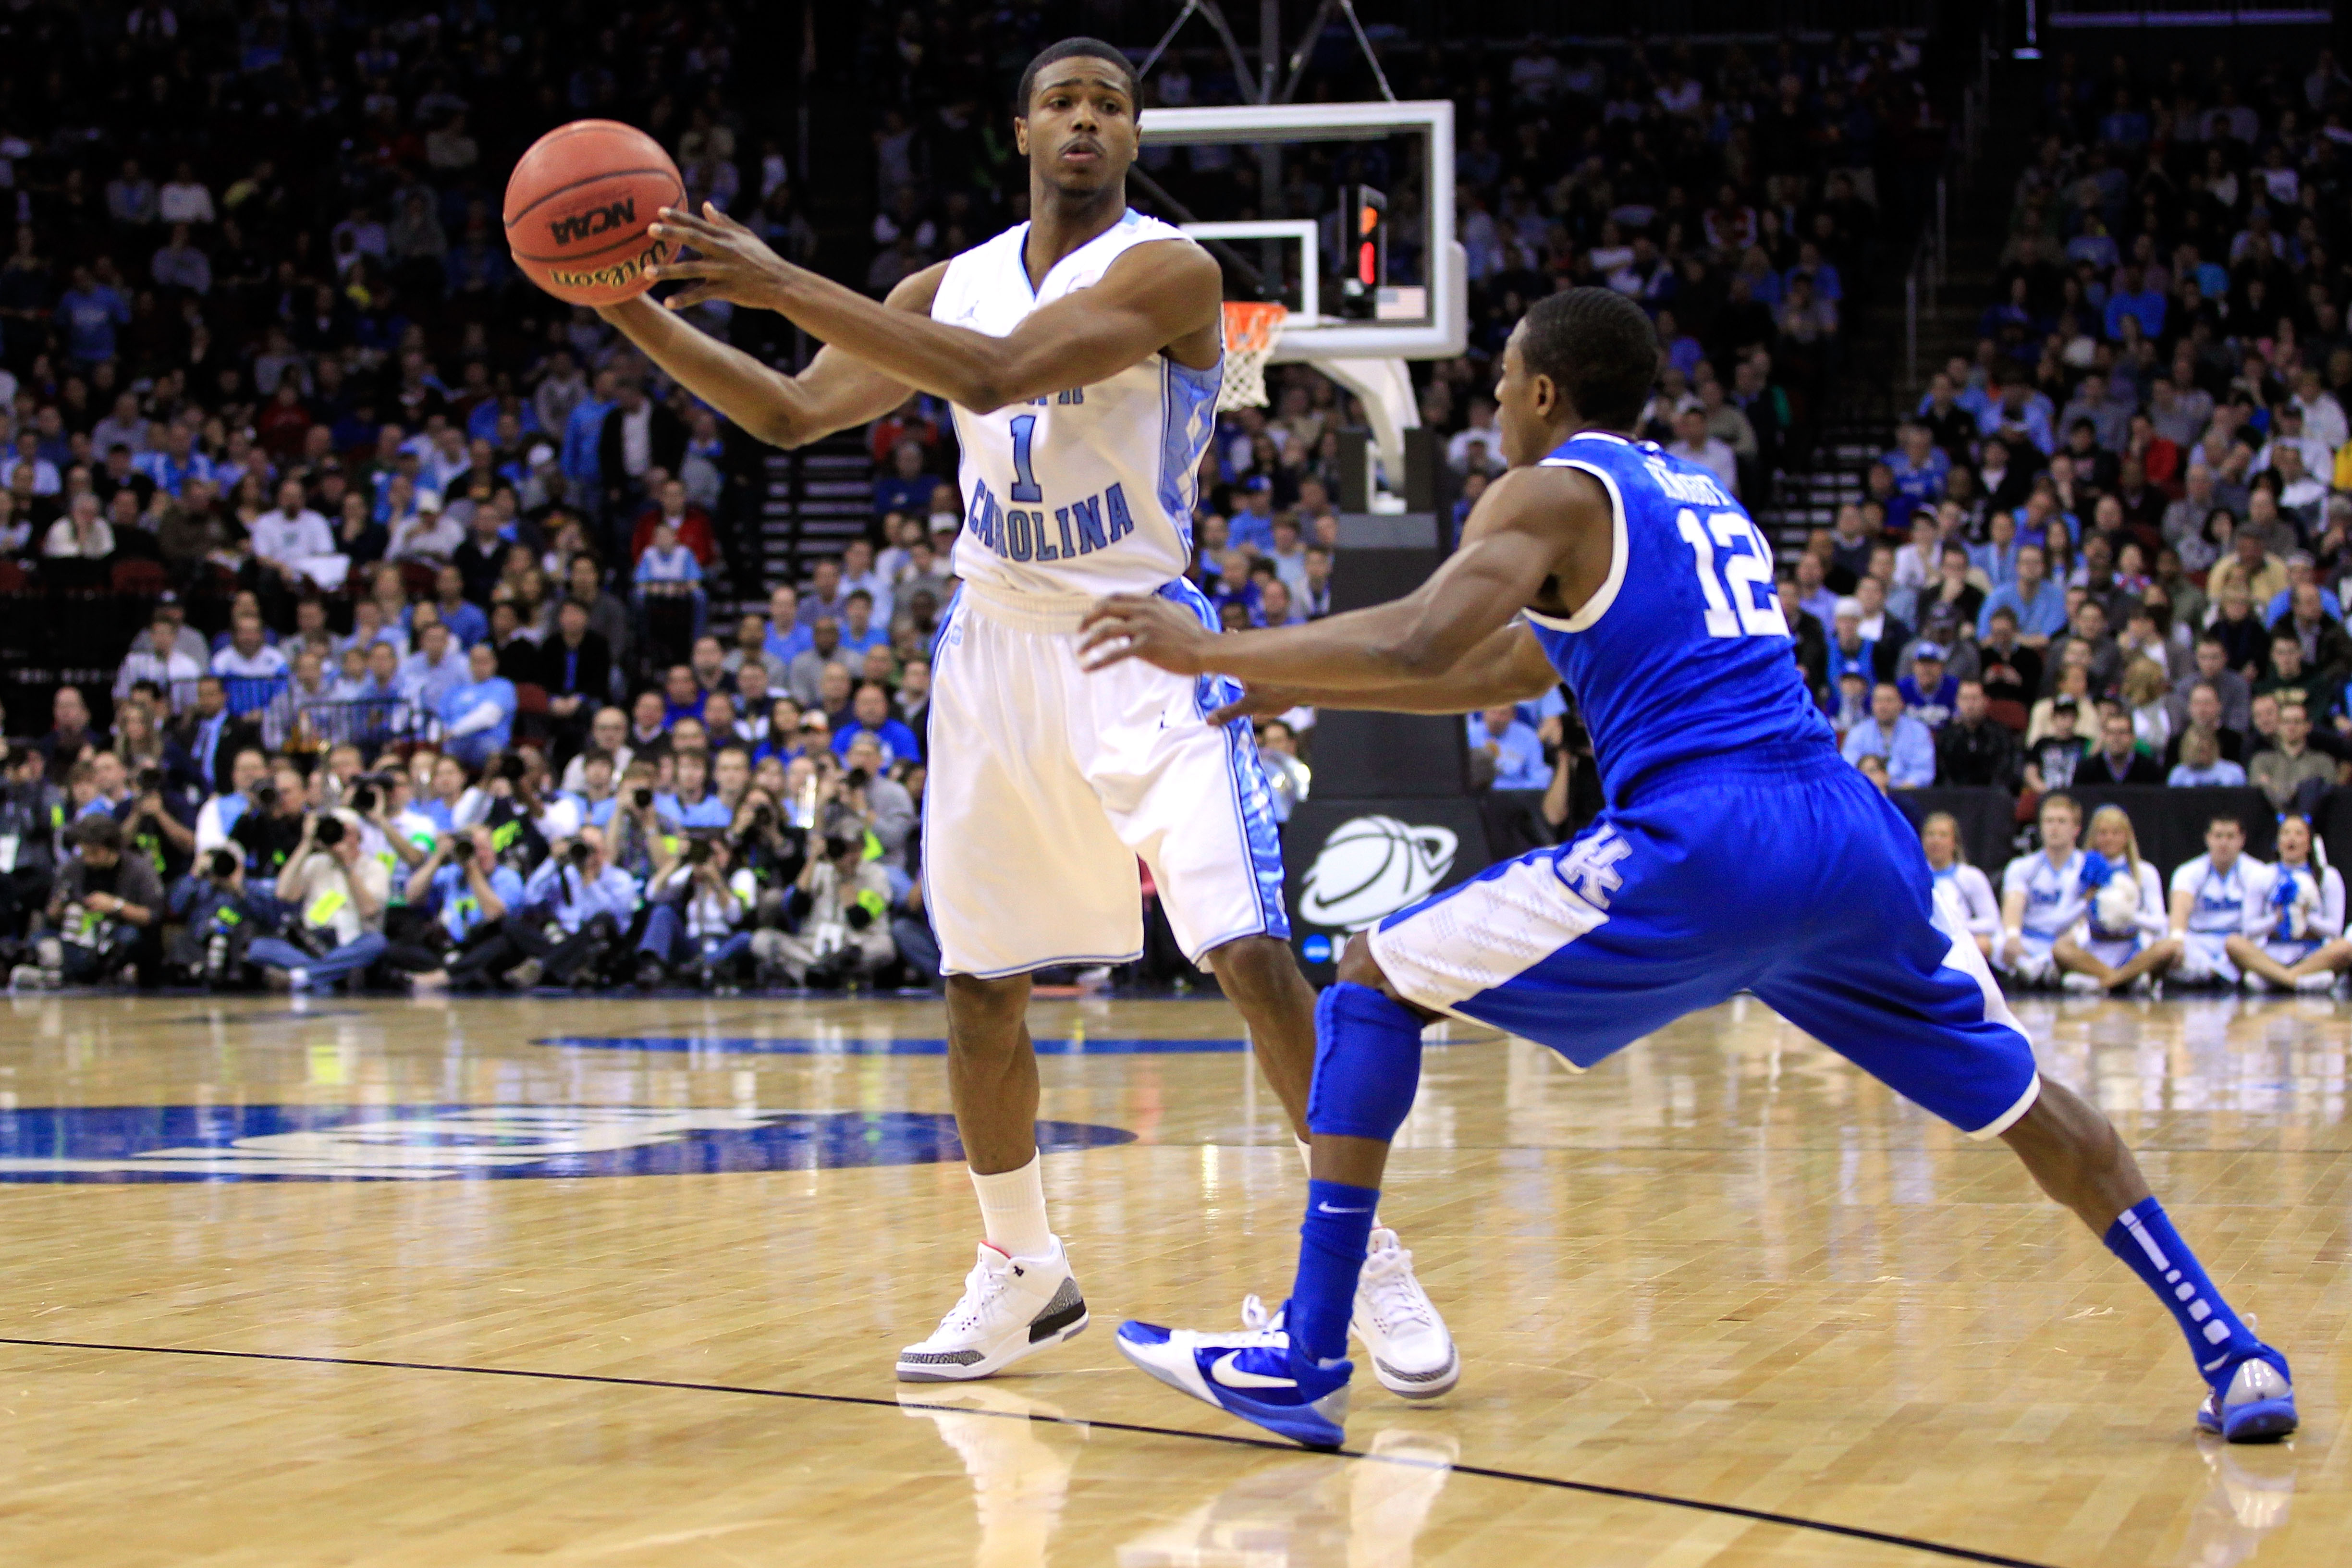 NEWARK, NJ - MARCH 27:  Dexter Strickland #1 of the North Carolina Tar Heels in action against Brandon Knight #12 of the Kentucky Wildcats during the east regional final of the 2011 NCAA men's basketball tournament at Prudential Center on March 27, 2011 i